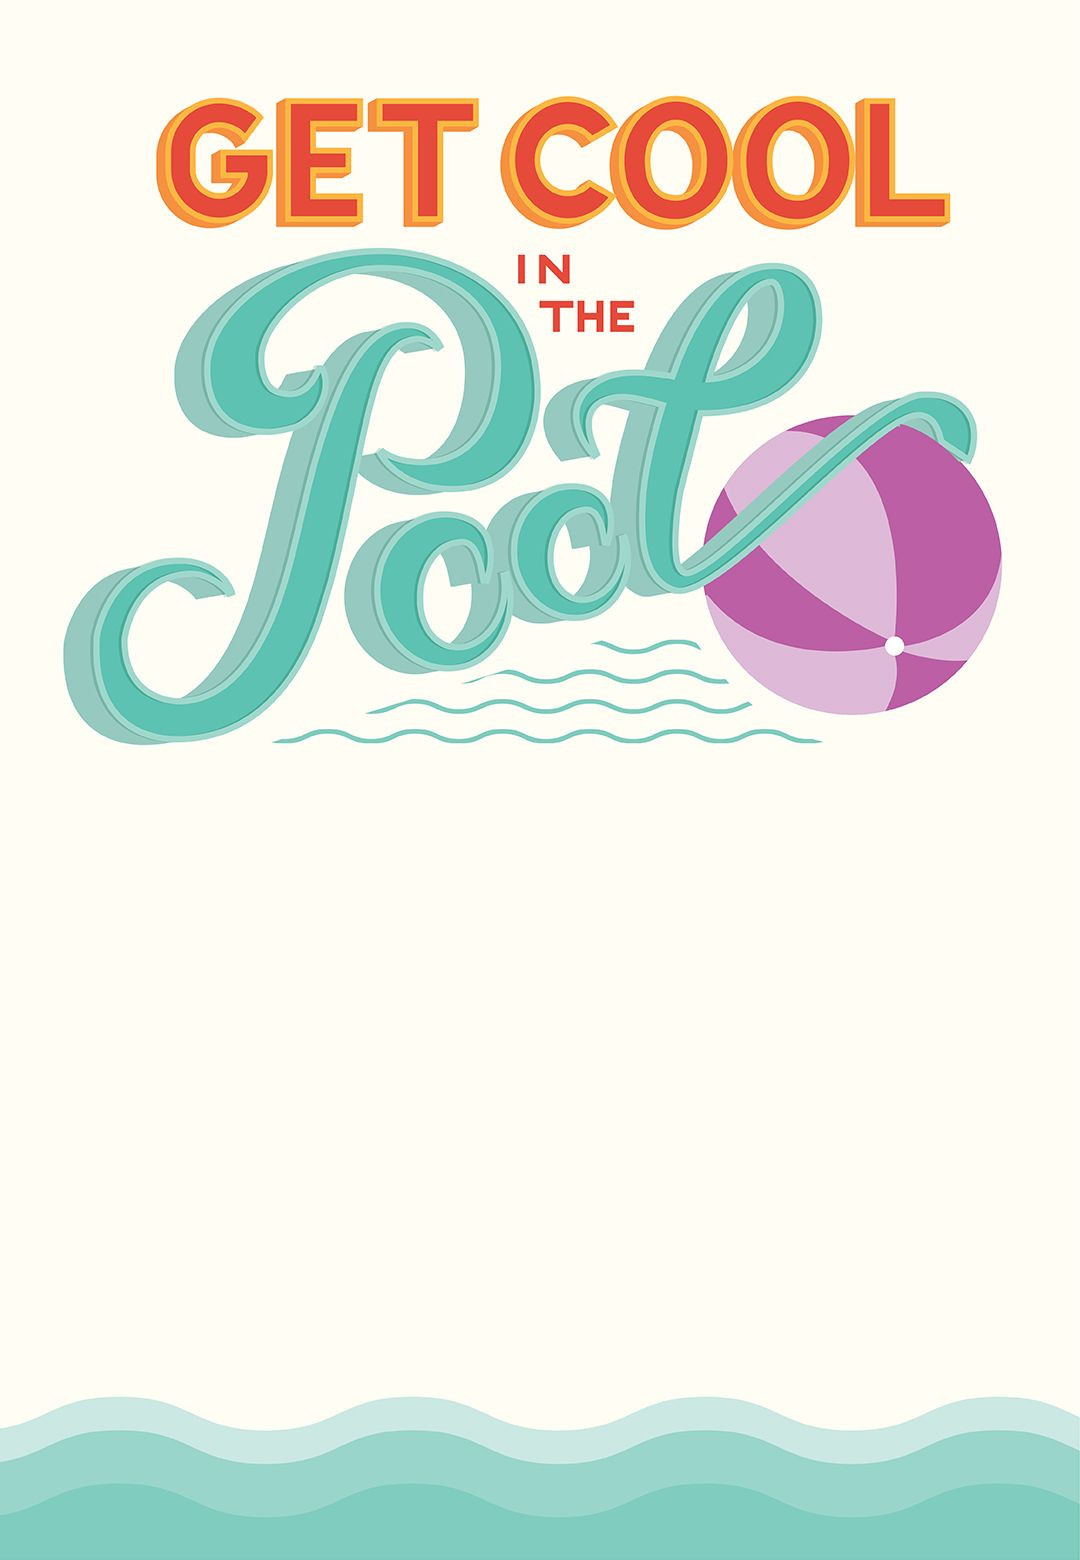 Pool Party Party Invitation Template Free